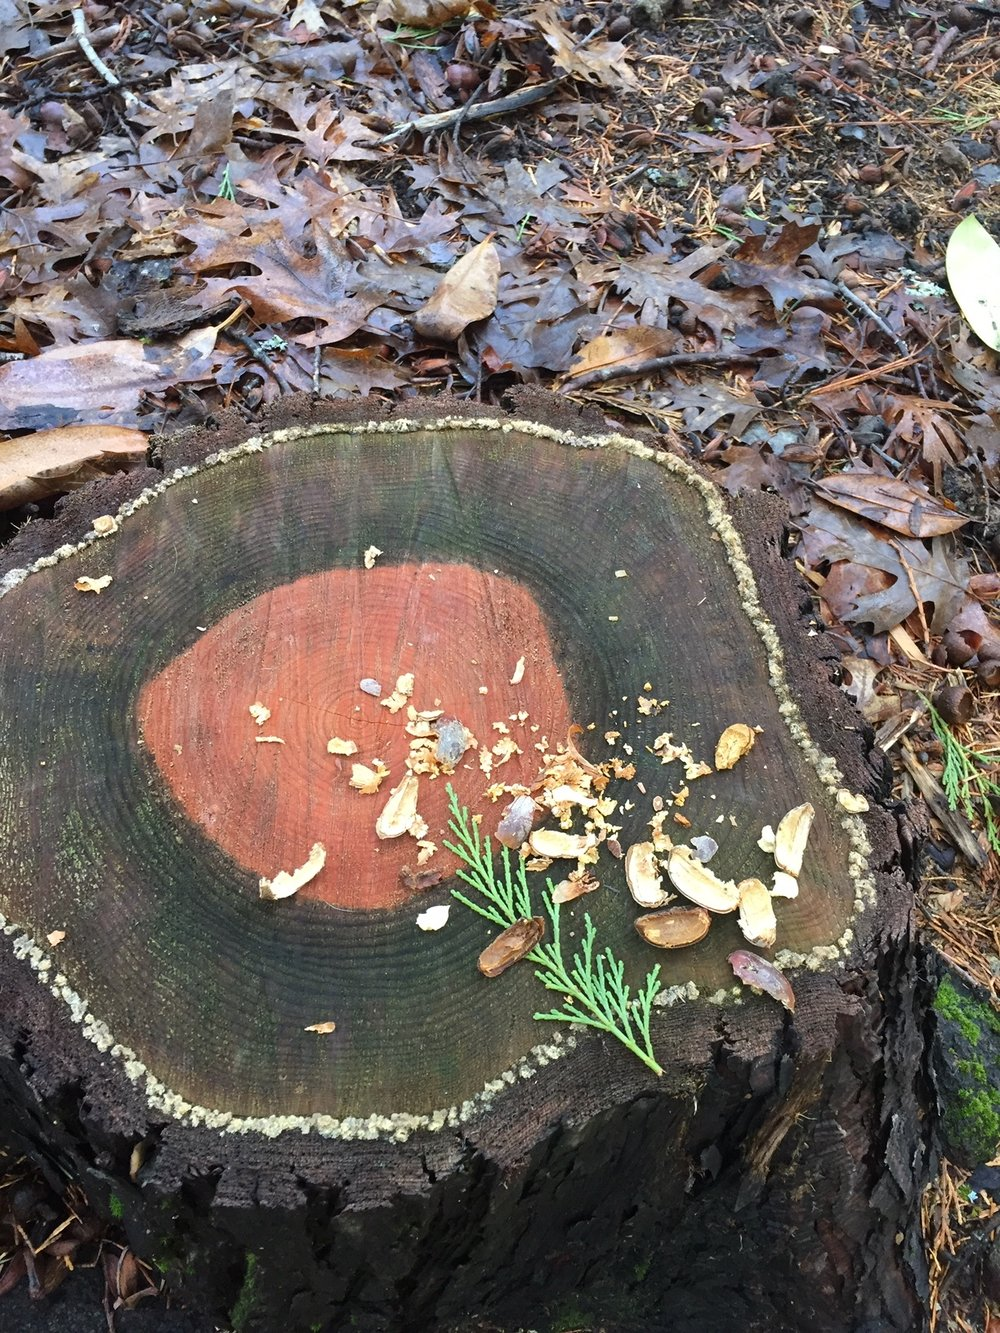 A squirrel's charming dinner plate along the path.